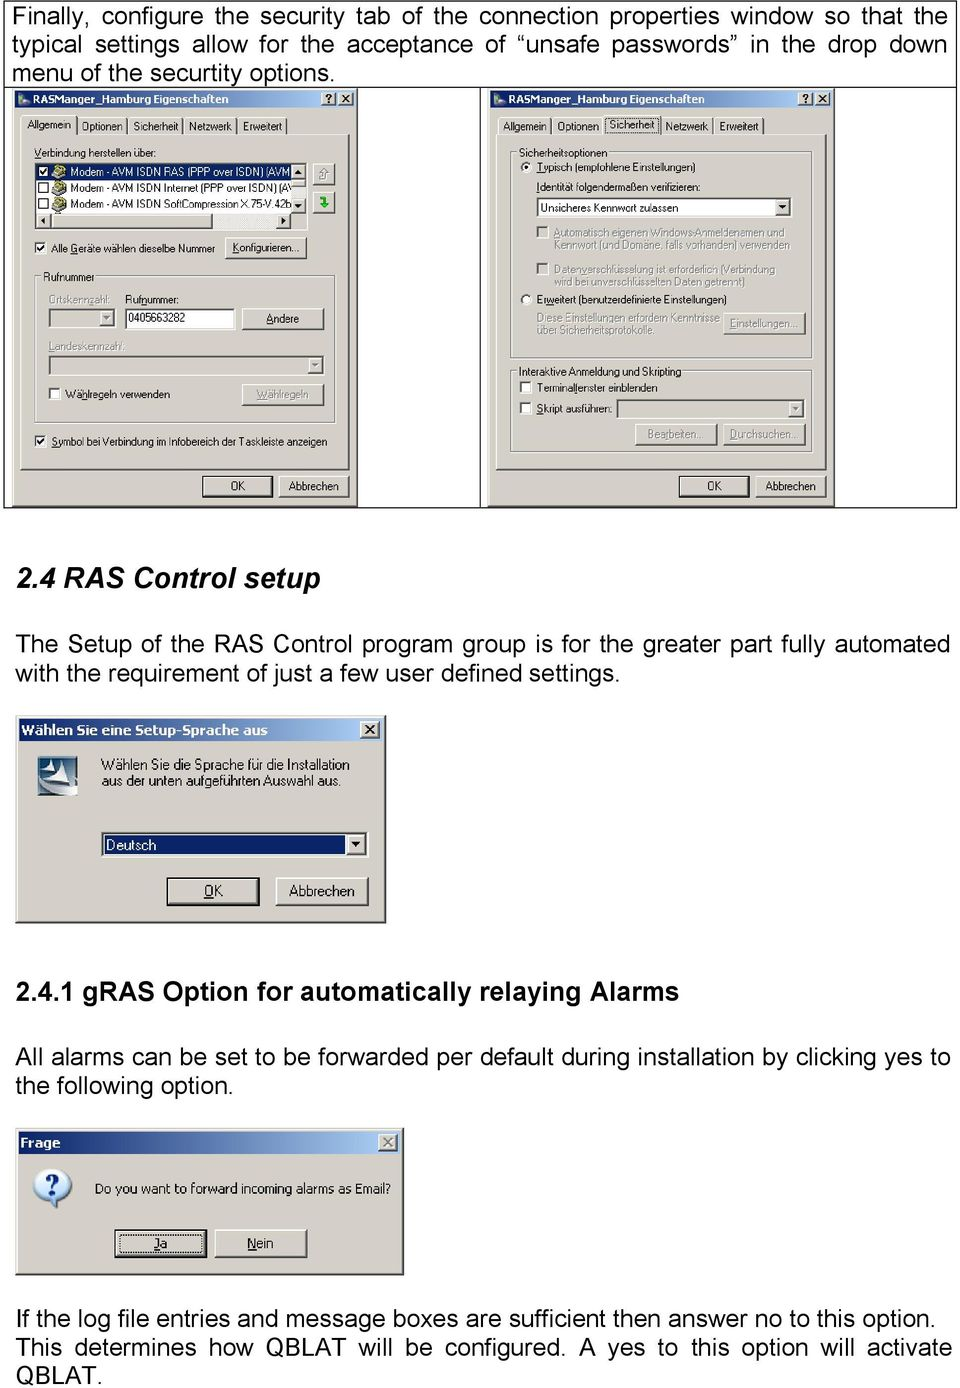 4 RAS Control setup The Setup of the RAS Control program group is for the greater part fully automated with the requirement of just a few user defined settings. 2.4.1 gras Option for automatically relaying Alarms All alarms can be set to be forwarded per default during installation by clicking yes to the following option.